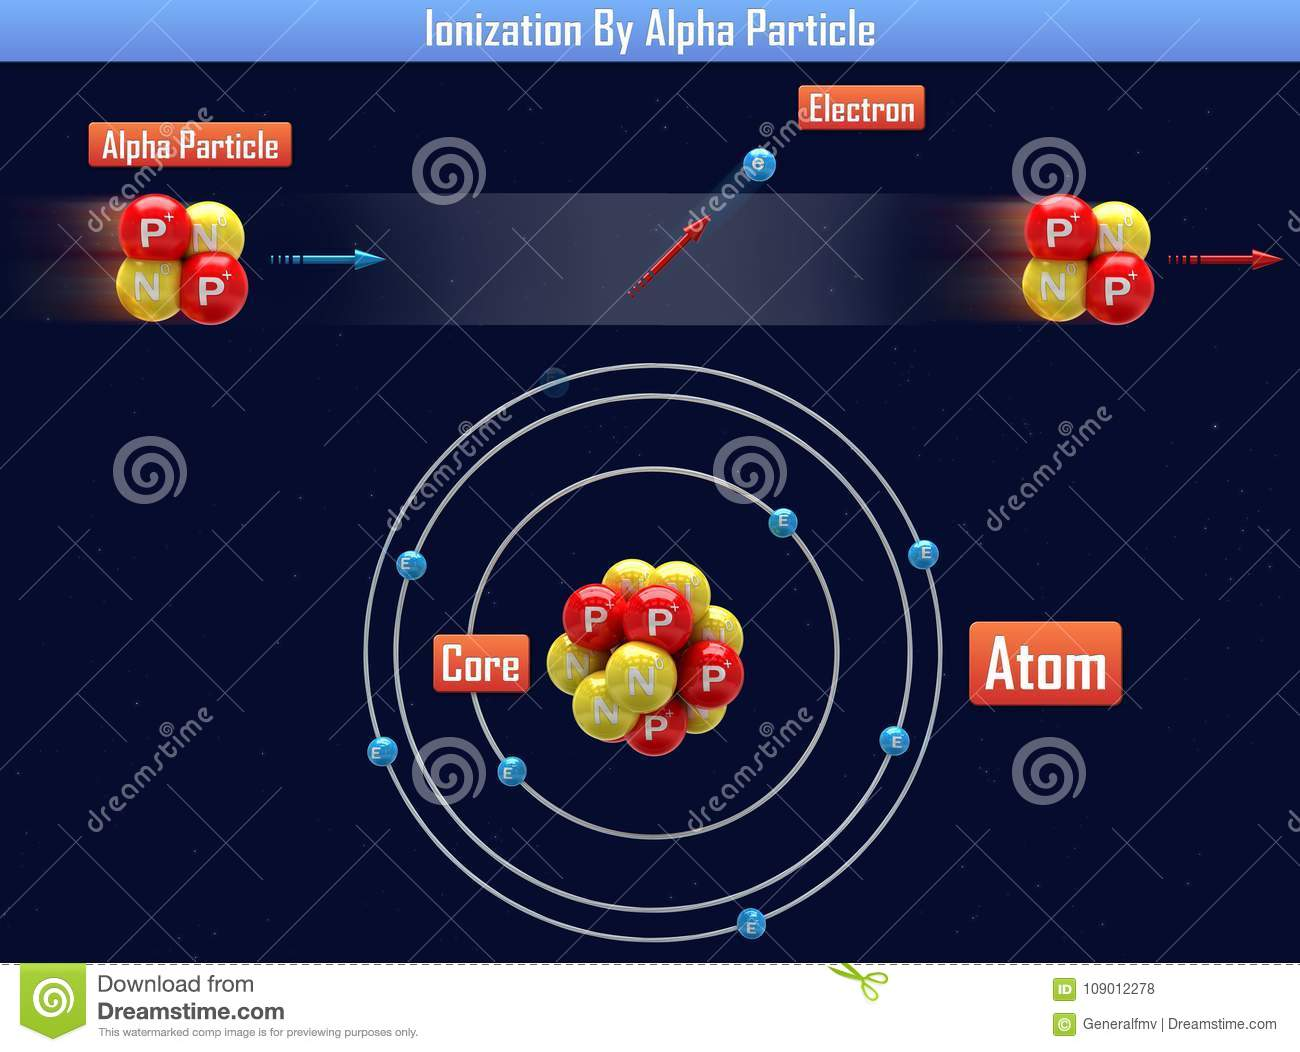 Ionisation par Alpha Particle